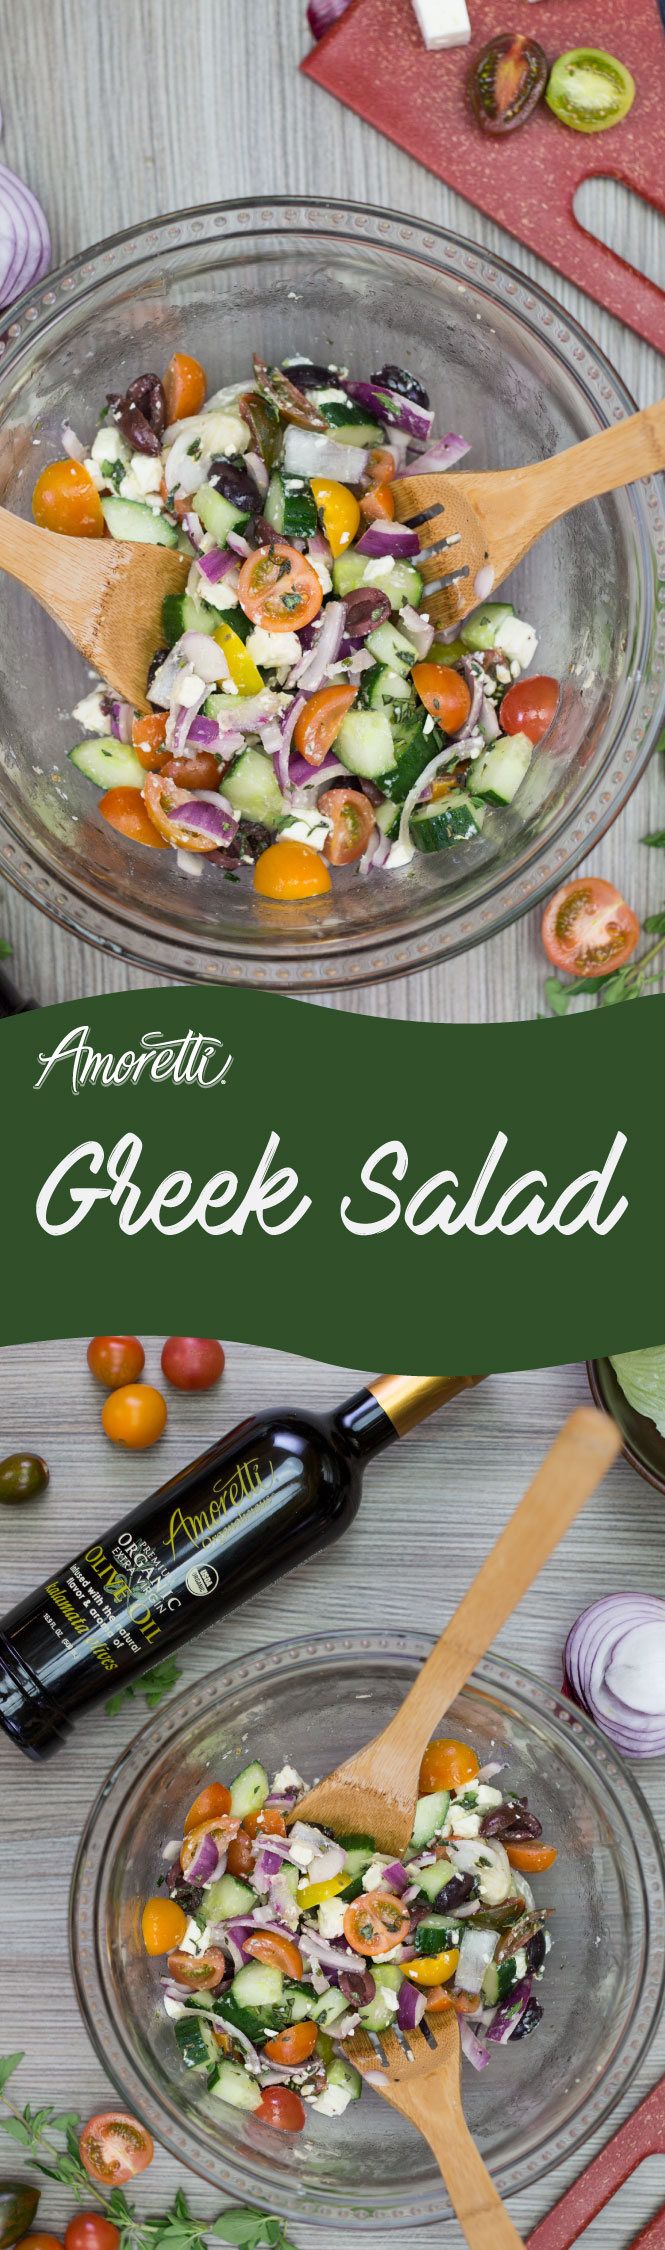 Amoretti's Kamalata Olive Oil gives this salad a savory touch of goodness!